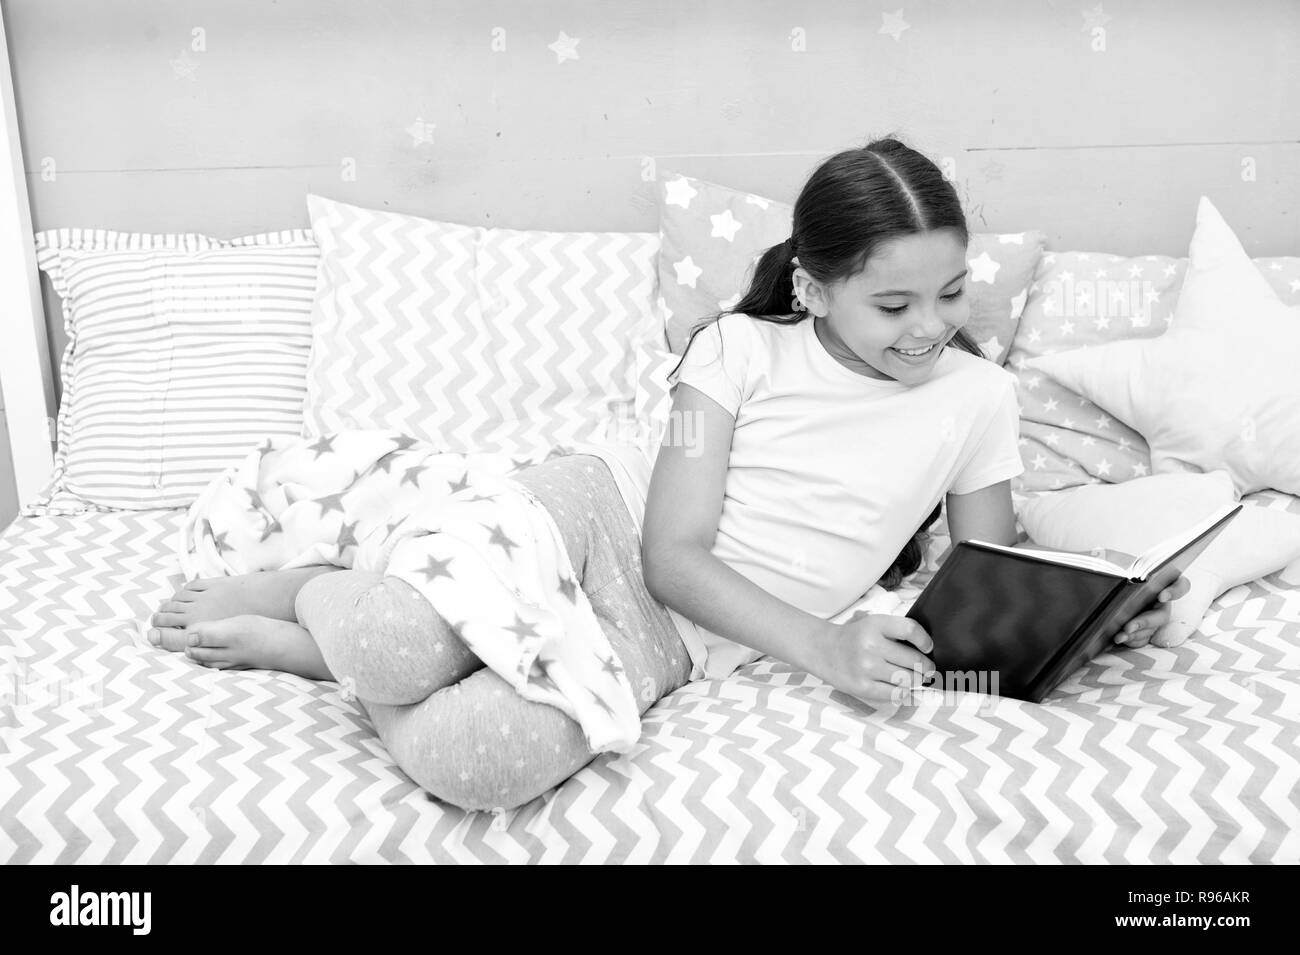 Fascinating story. Girl child lay bed with pillows read book. Kid prepare to go to bed. Time for evening fascinating story. Girl kid long hair cute pajamas relax and read fascinating story book. - Stock Image